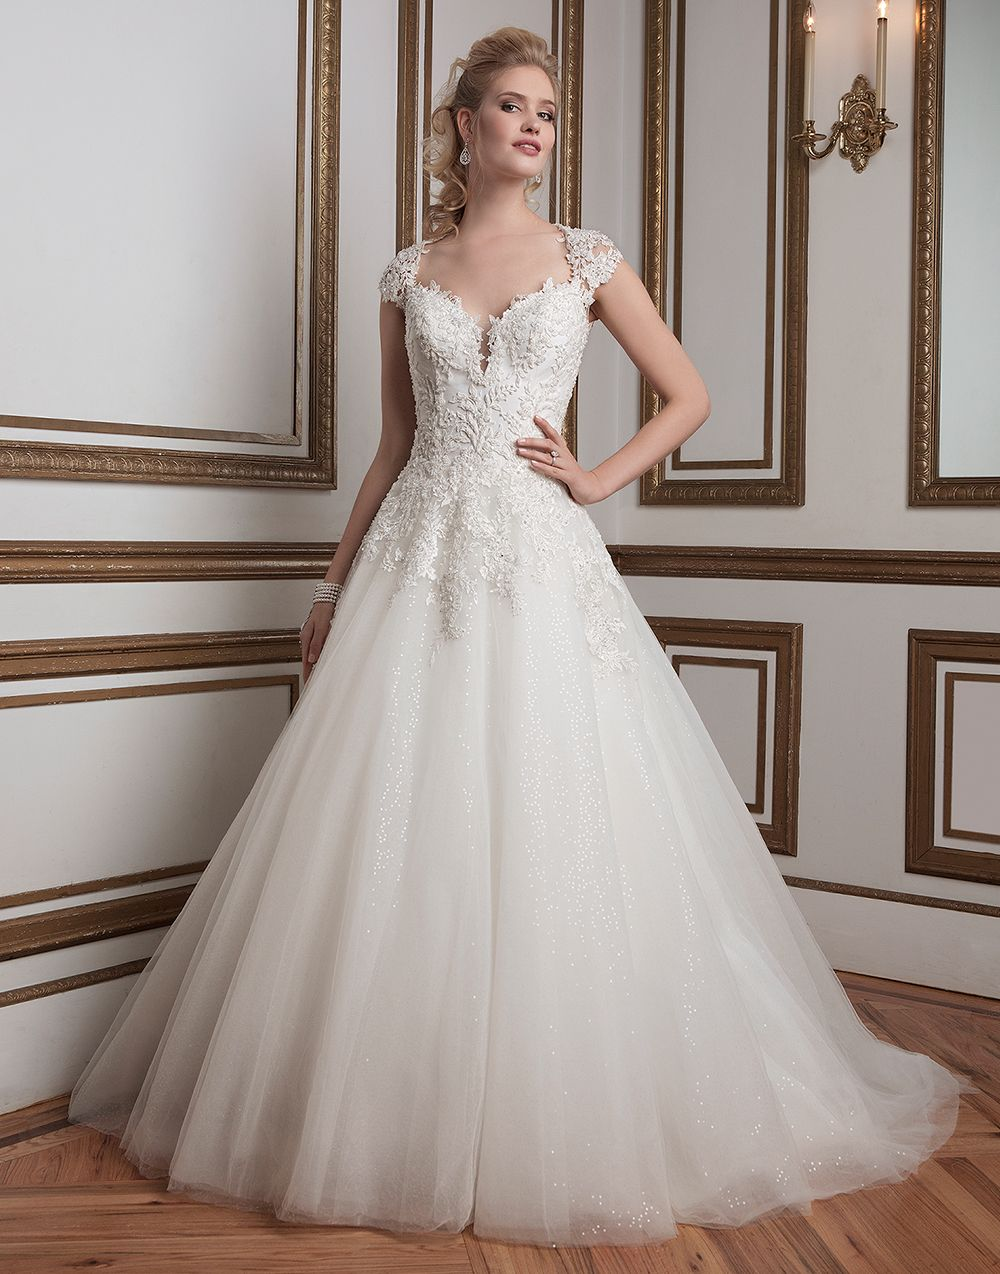 Justin Alexander Wedding Dresses Style 8807 Beaded Lace And Tulle Ball Gown Complemented With A Queen Anne Neckline